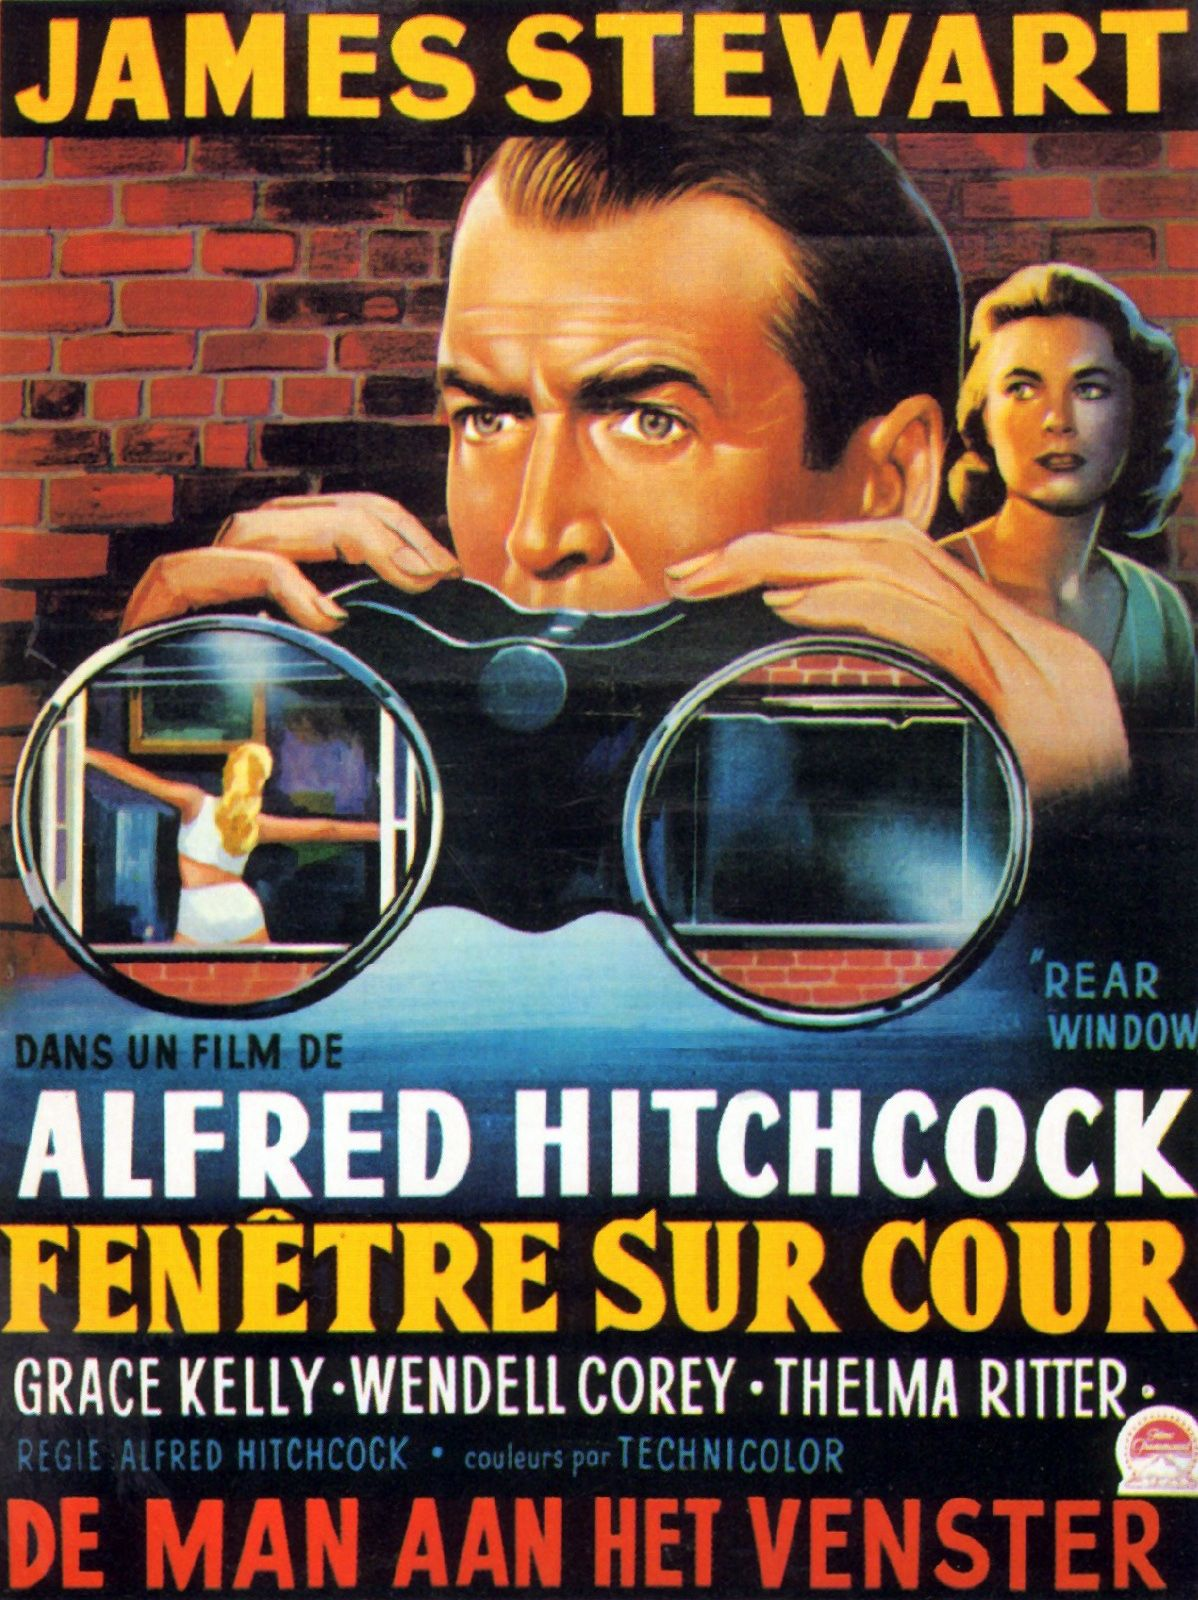 17 best images about posters from awesome films i love to watch 17 best images about posters from awesome films i love to watch and which you should too casablanca 1942 casablanca and the godfather part